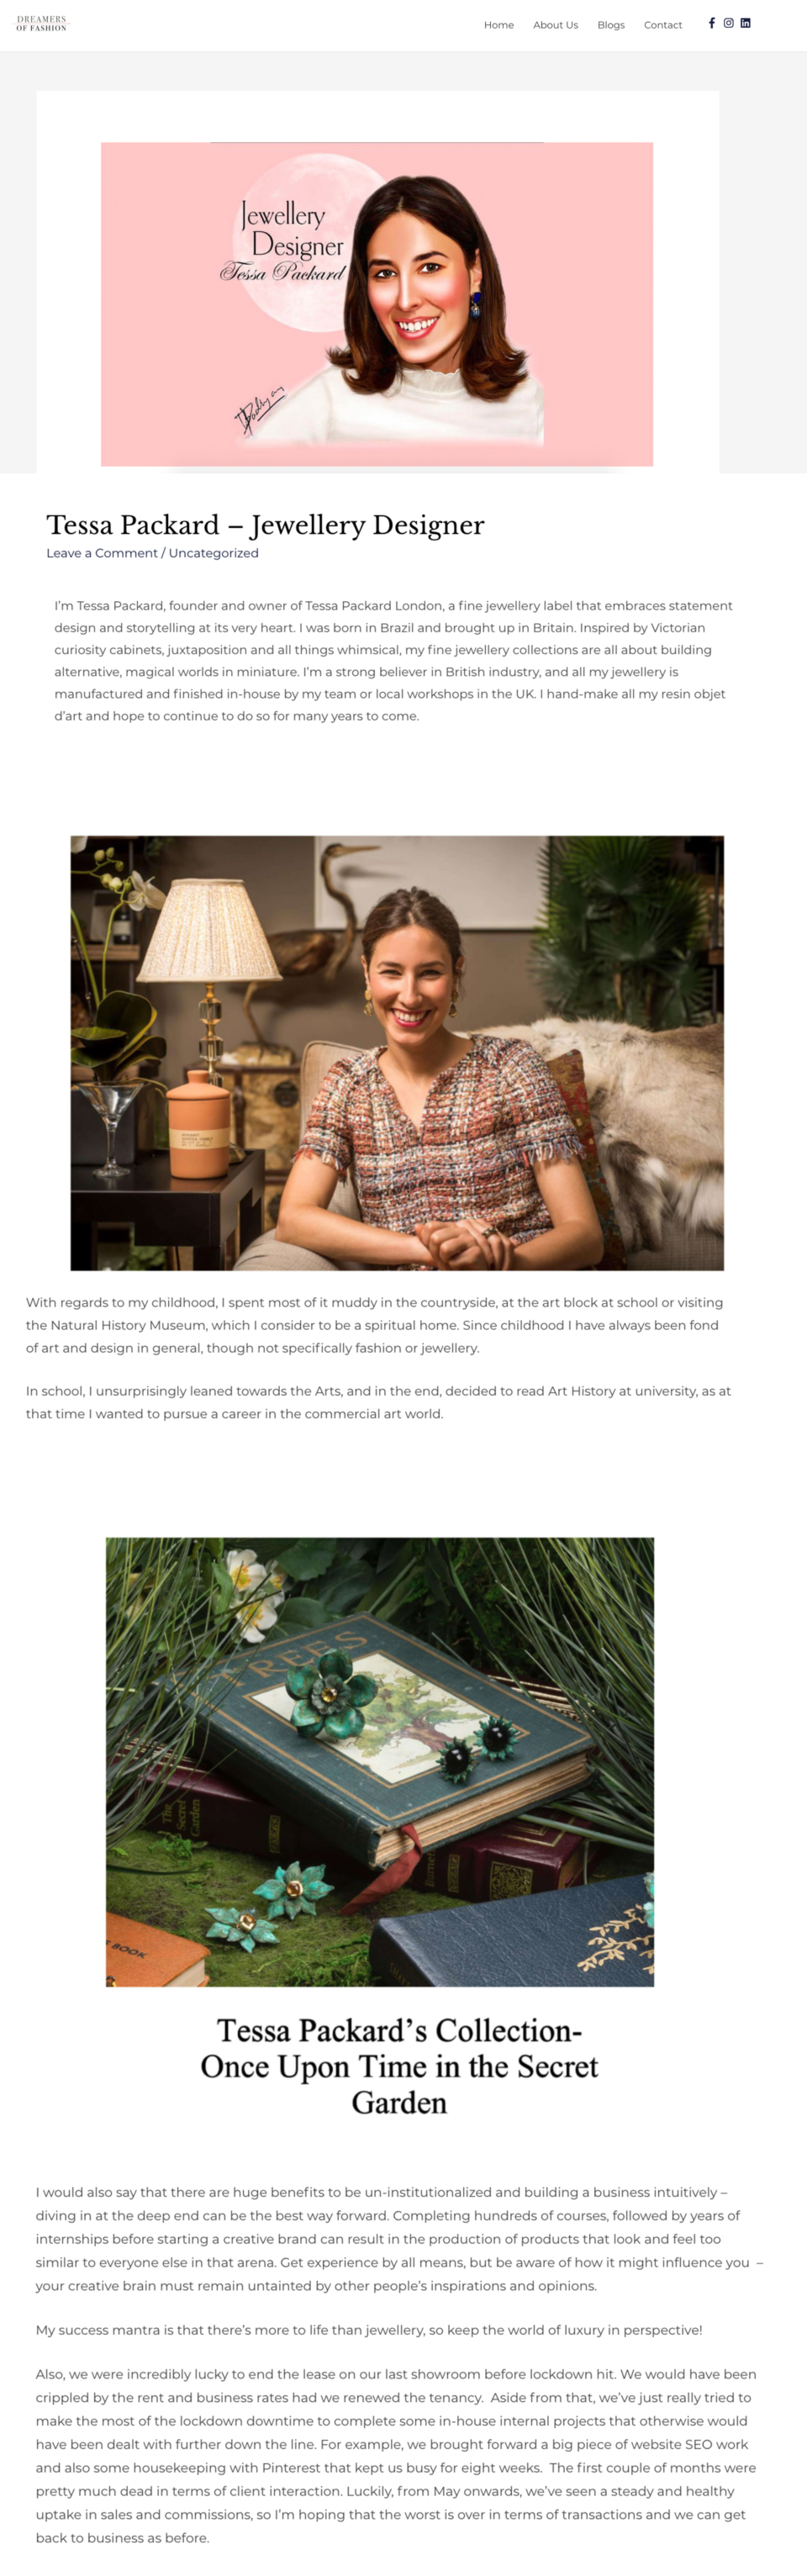 Tessa Packard London featured on Dreamers of Fashion Online